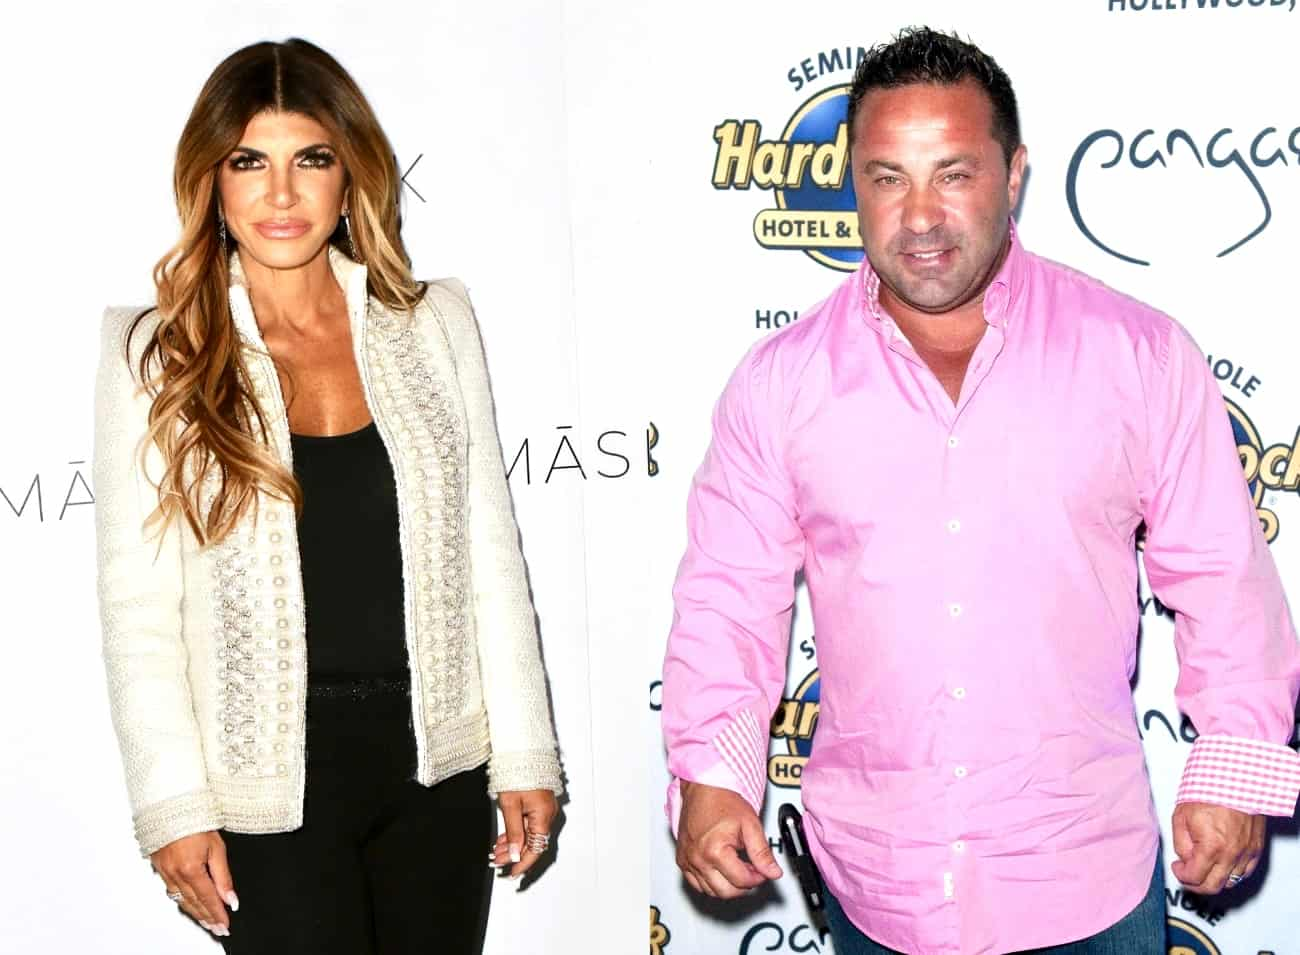 RHONJ Star Teresa Giudice's Relationship Status Revealed Following Her Separation From Joe Giudice